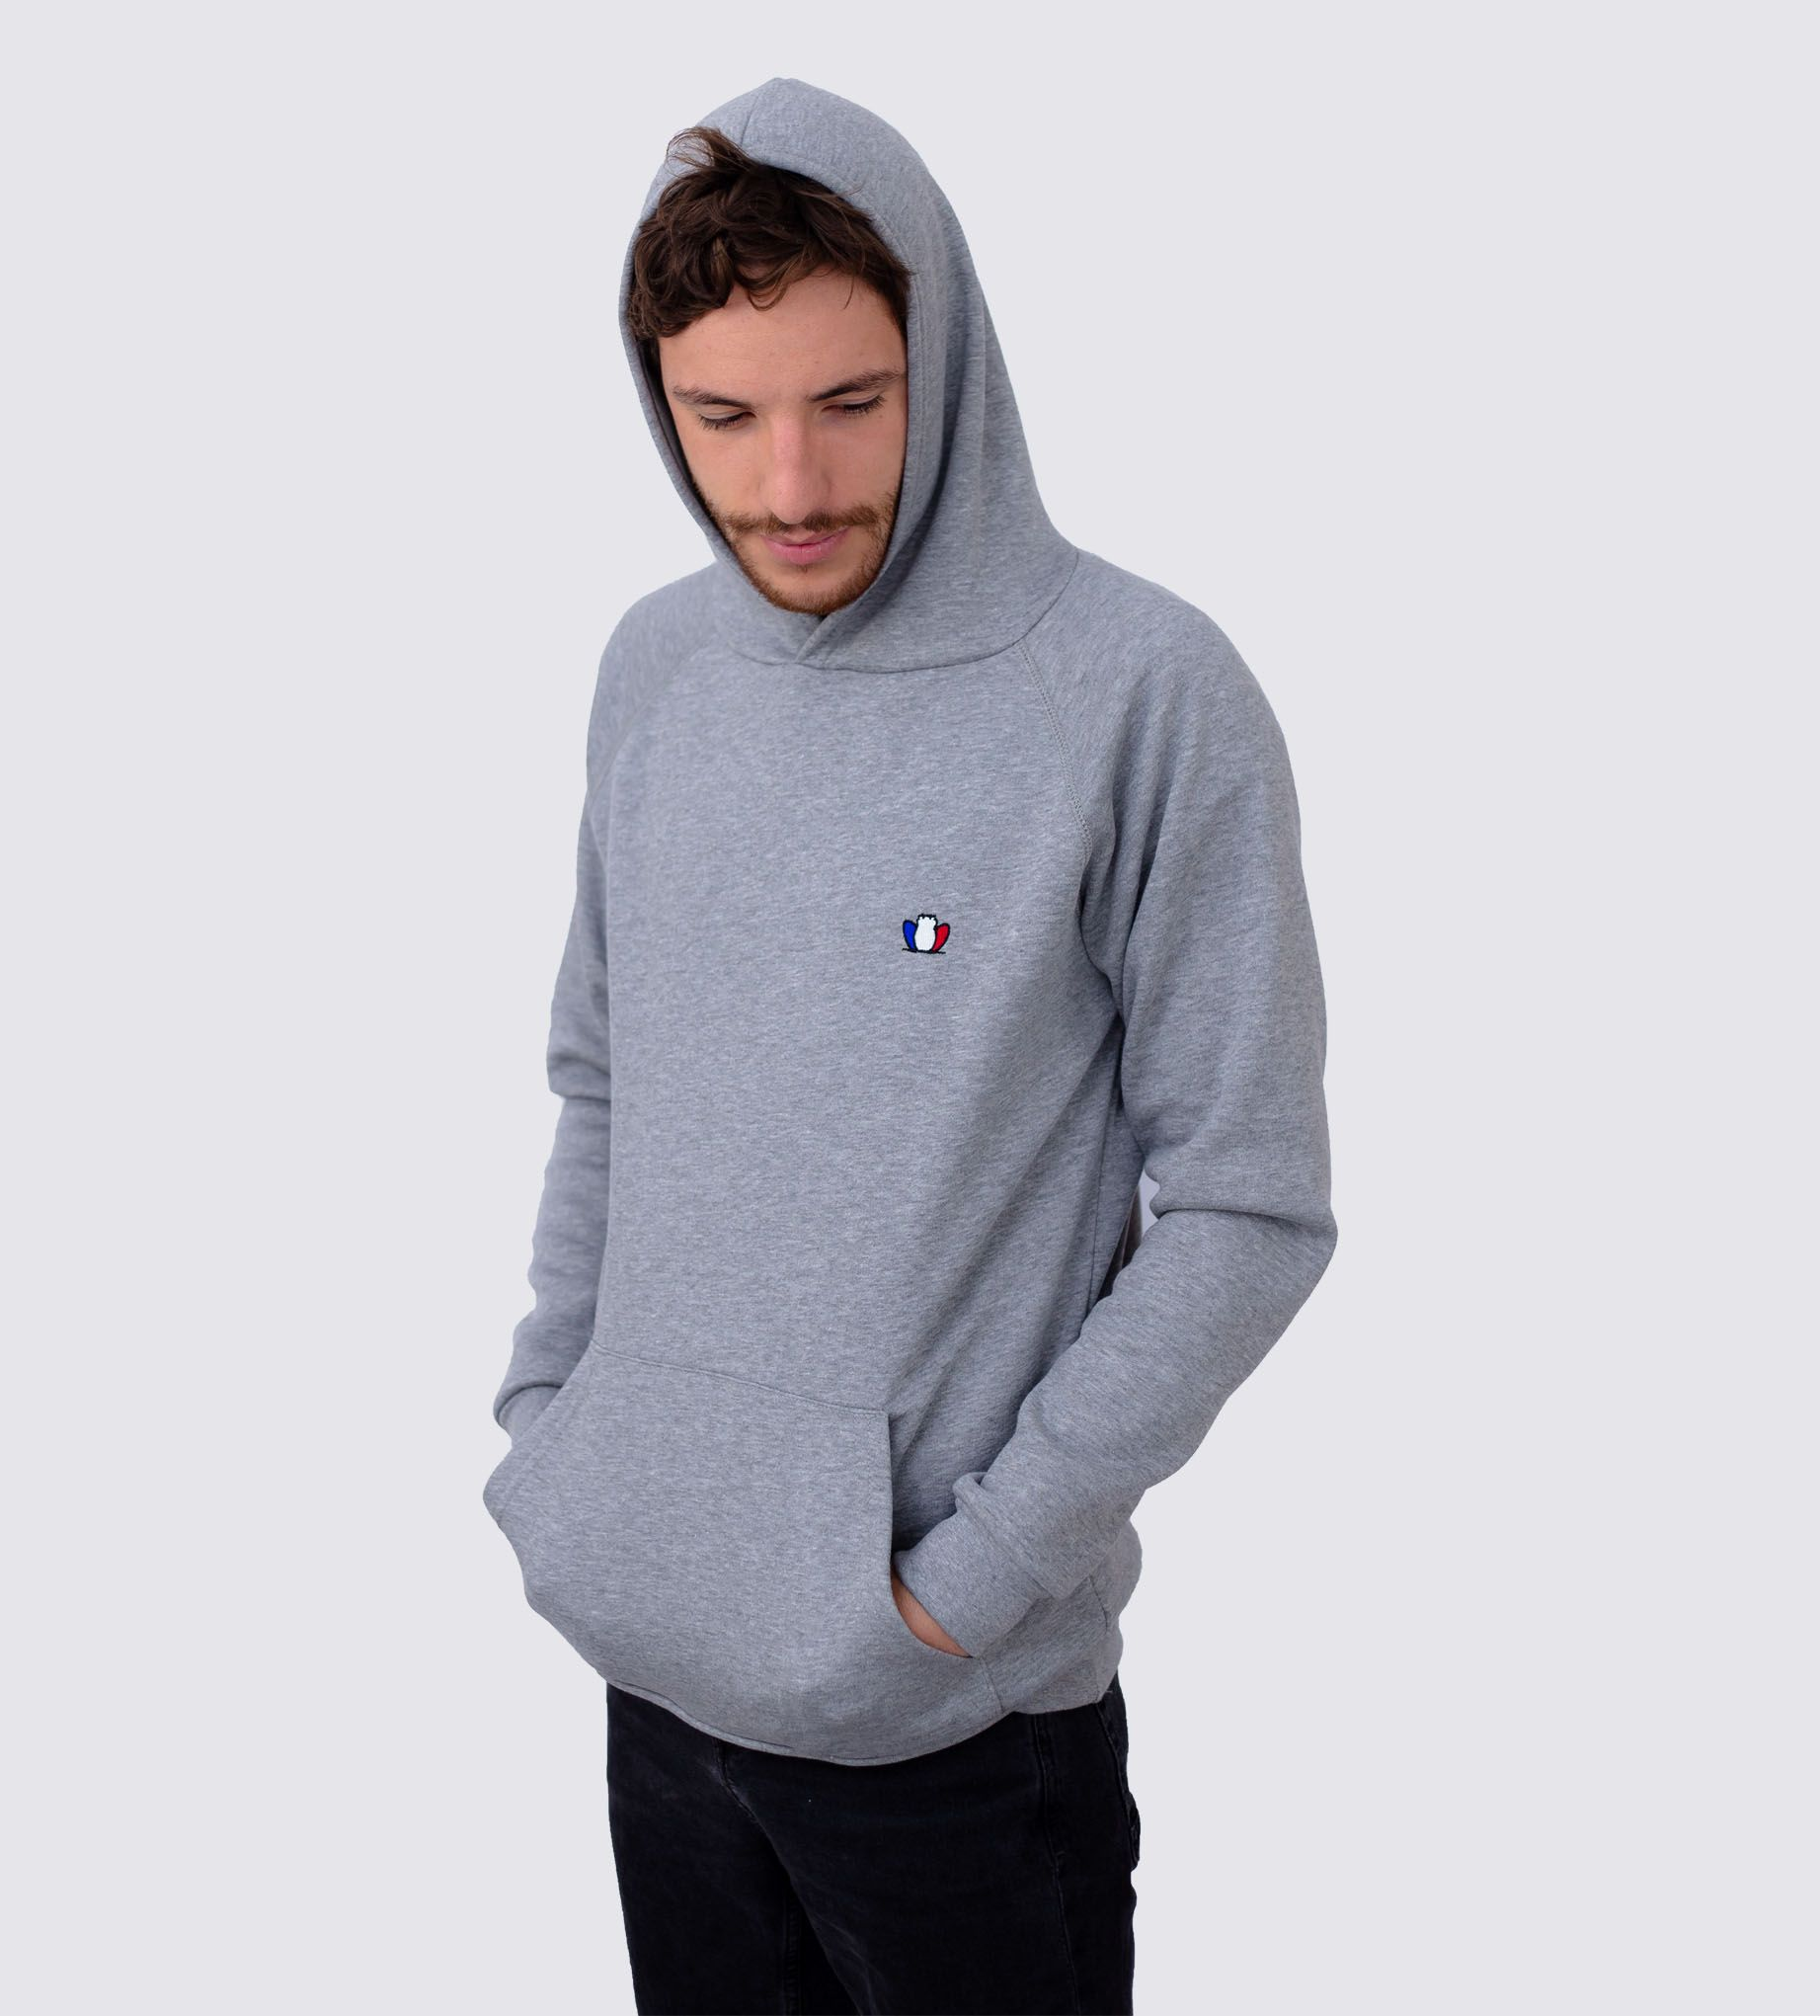 2a14349439029 LE CONFORTABLE 3.0 - Sweat à capuche gris chiné - Tranquille Émile